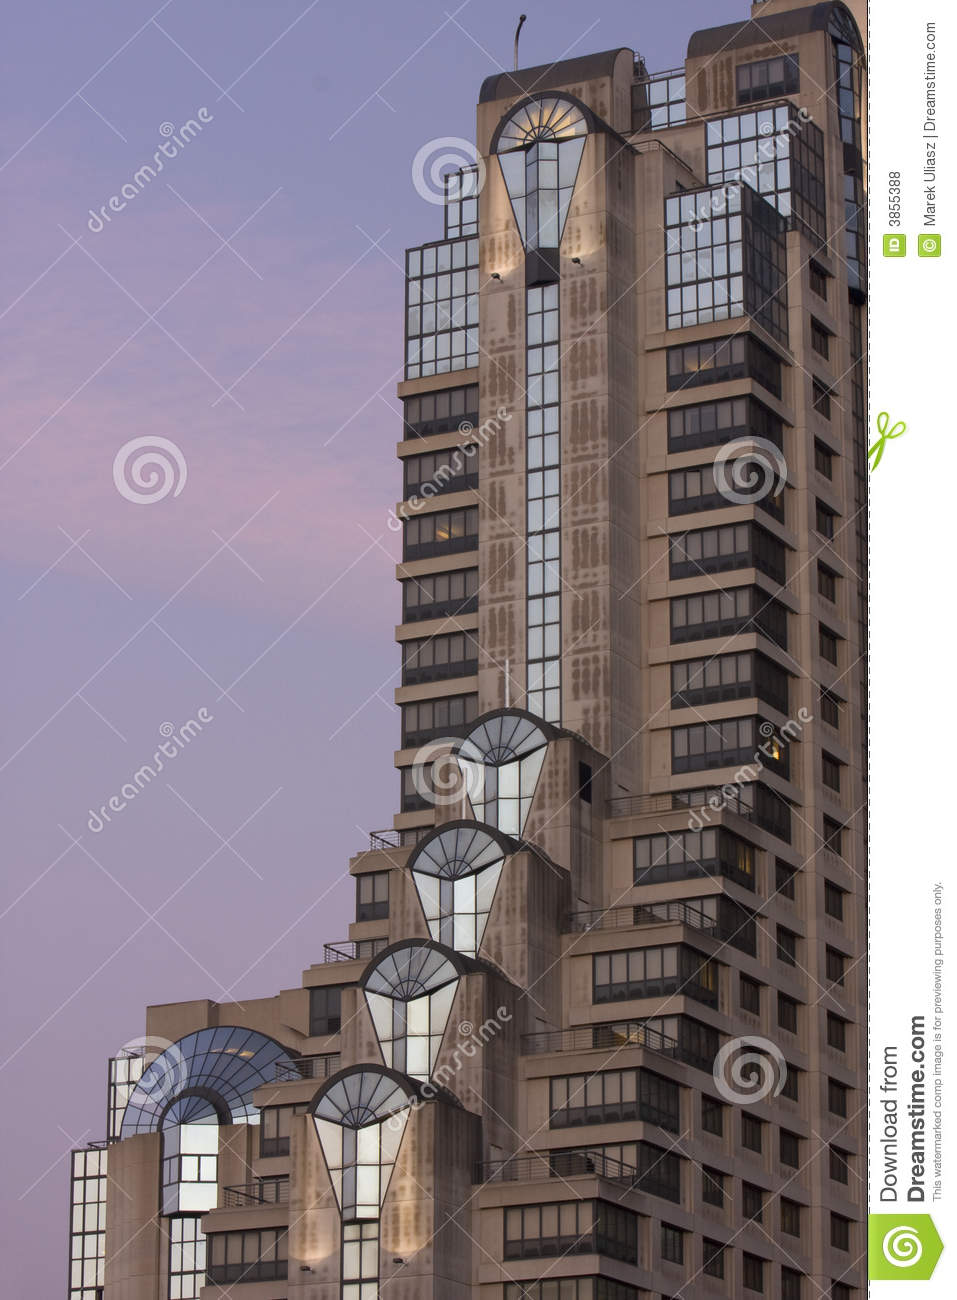 Skyscraper Hotel In San Francisco Before Sunrise Royalty Free Stock Photos Image 3855388